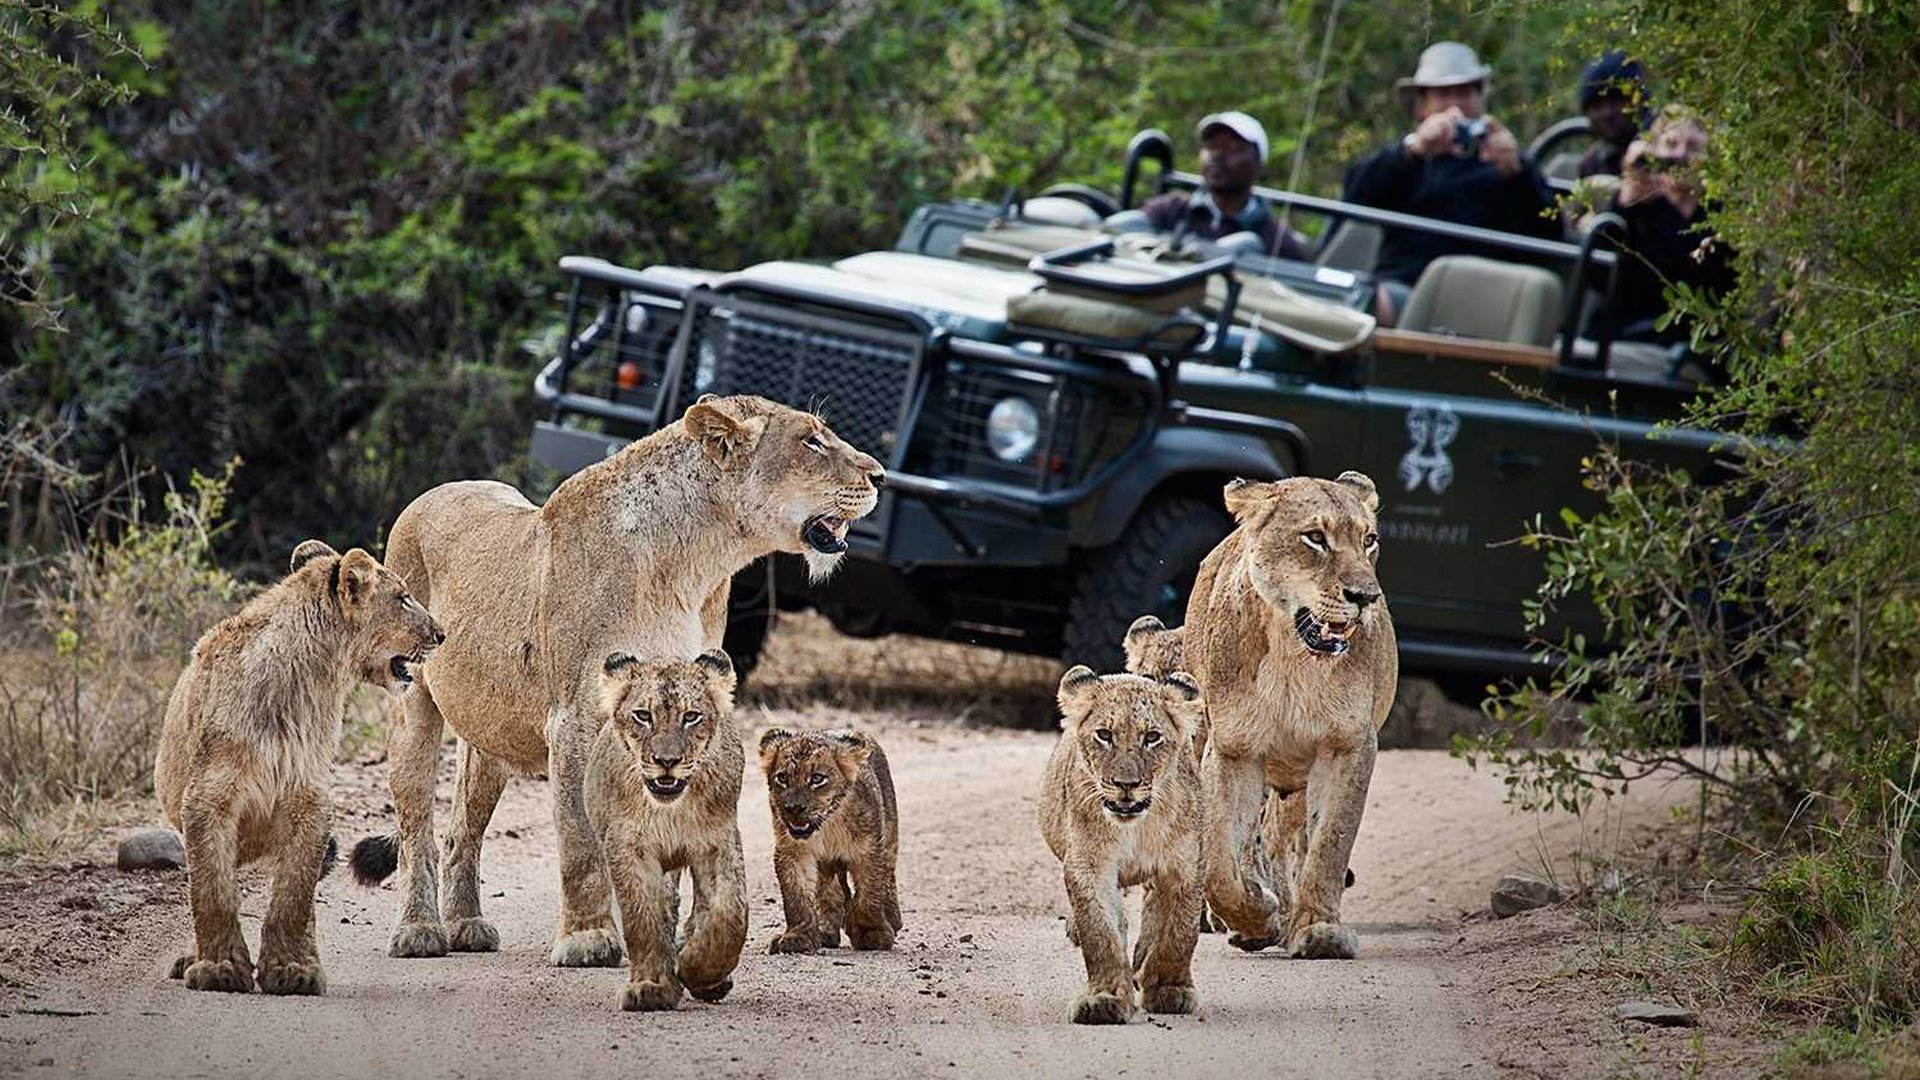 Safari Experience - Having a close encounter with the Big 5 in their natural habitat is a life-altering experience! The Londolozi Game Reserve, in the heart of the Sabi Sands Game Reserve, provides the ultimate combination of luxury and game viewing.